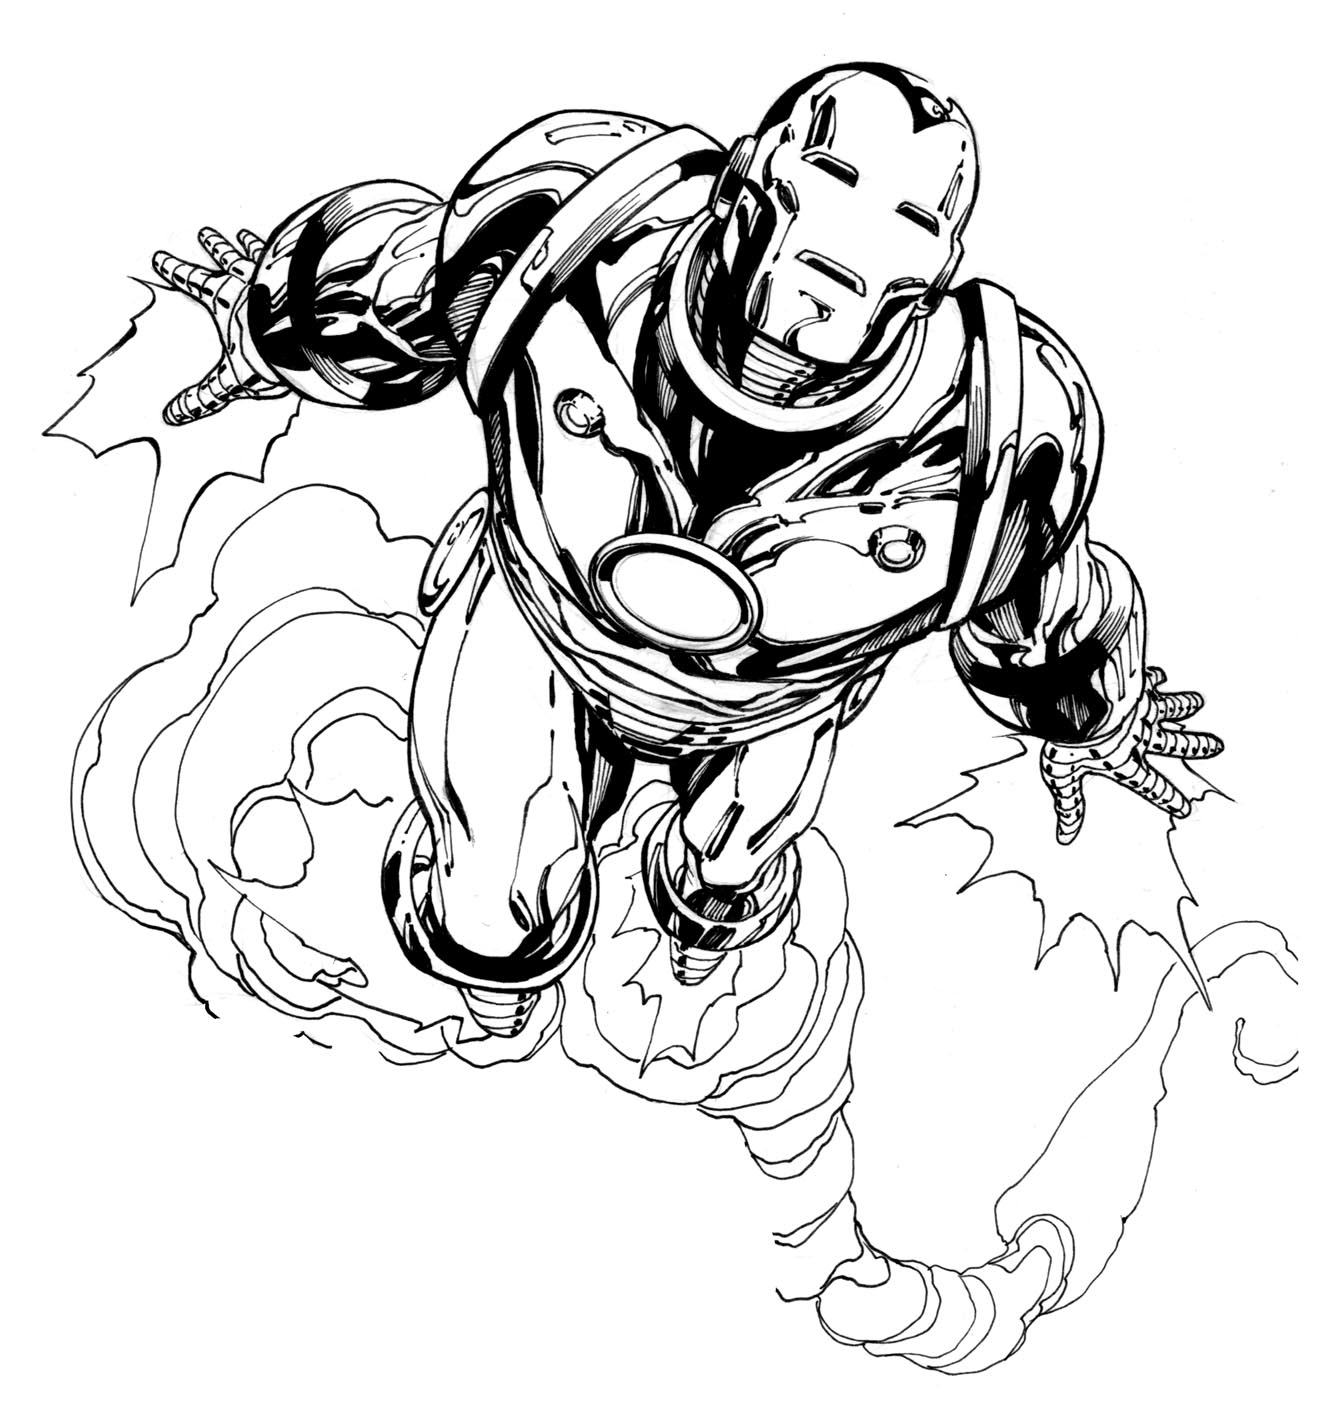 iron man colouring pages to print free printable iron man coloring pages for kids iron colouring pages to print man